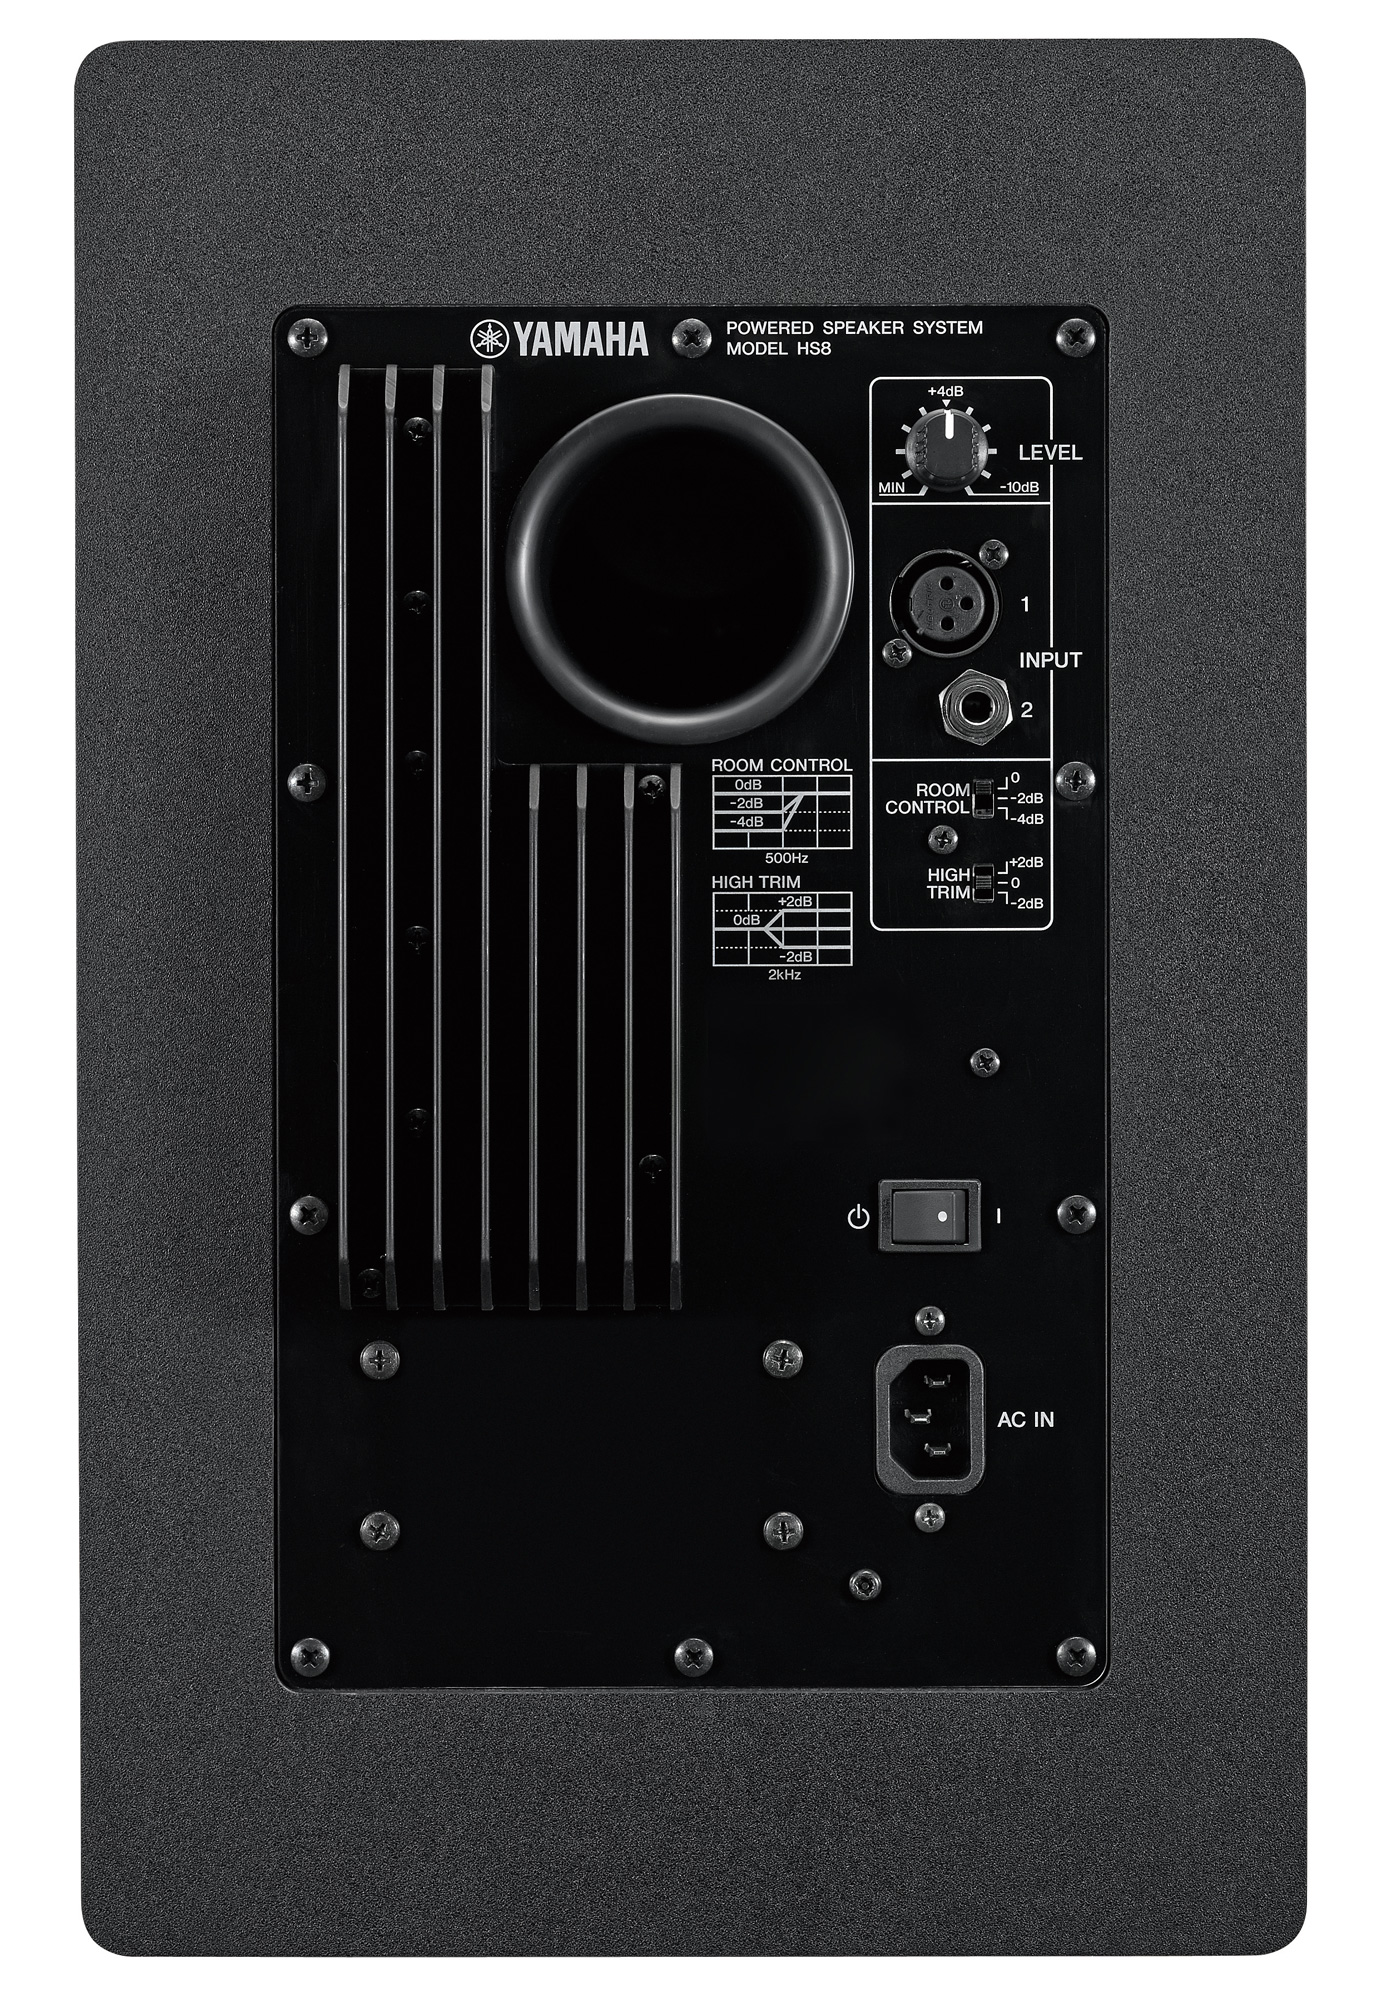 Image of the rear of the Yamaha HS8 studio monitor.